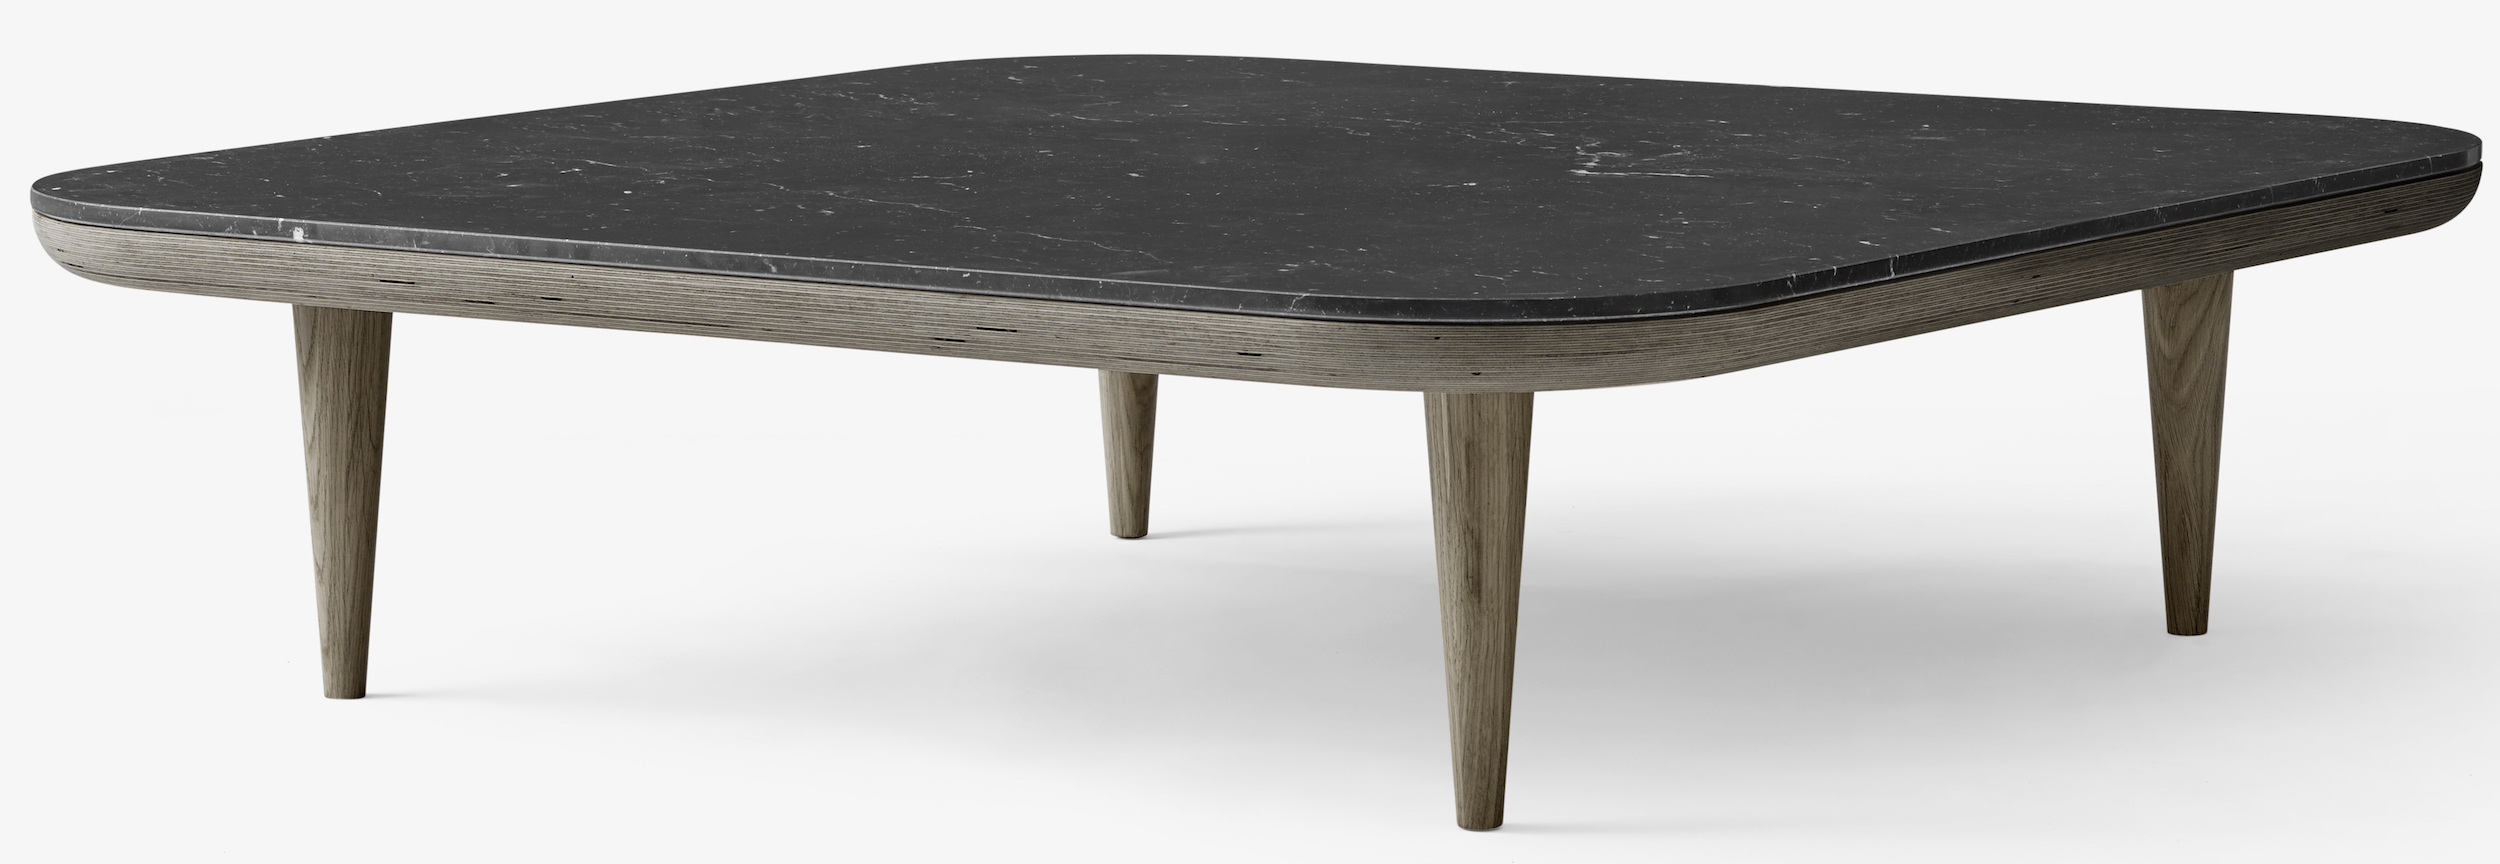 Table Basse Blanche Fly Tradition Fly Lounge Tables Design Space Copenhagen 2013